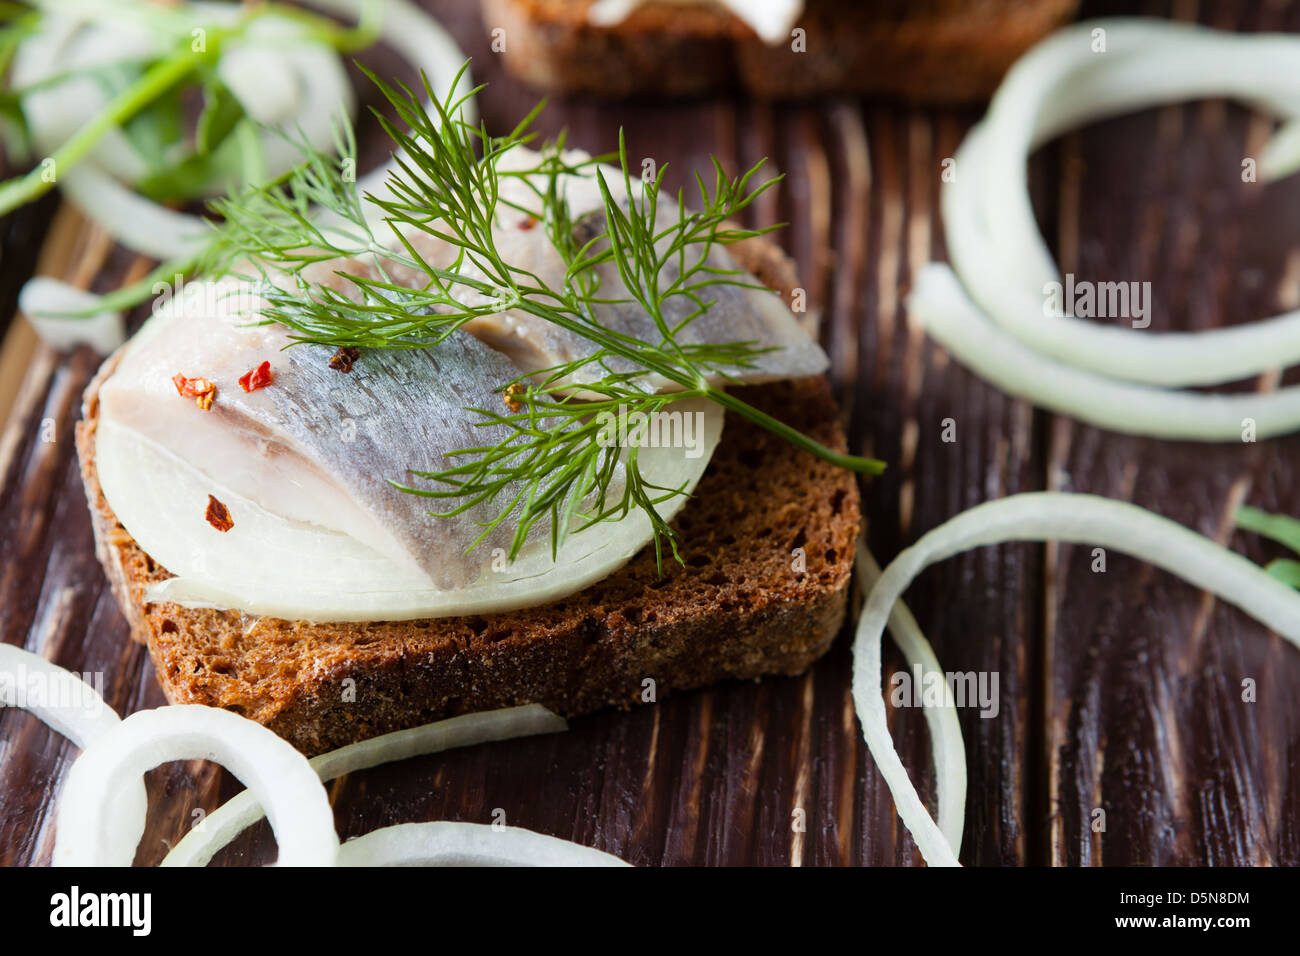 Canapes of black bread and salted herring, closeup - Stock Image